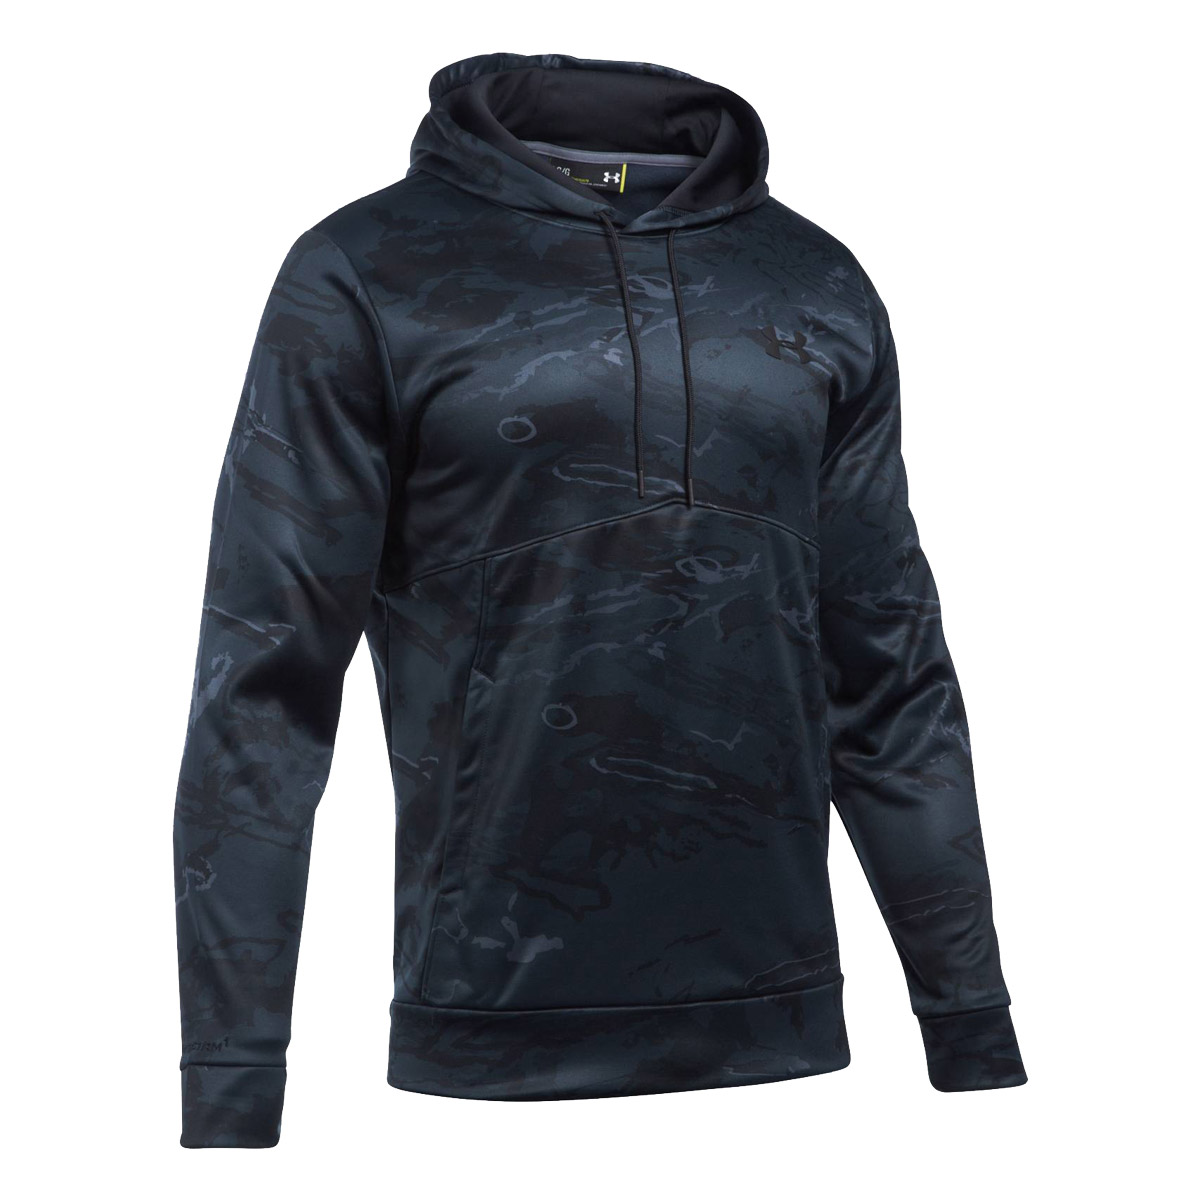 Under armour hunting hoodies